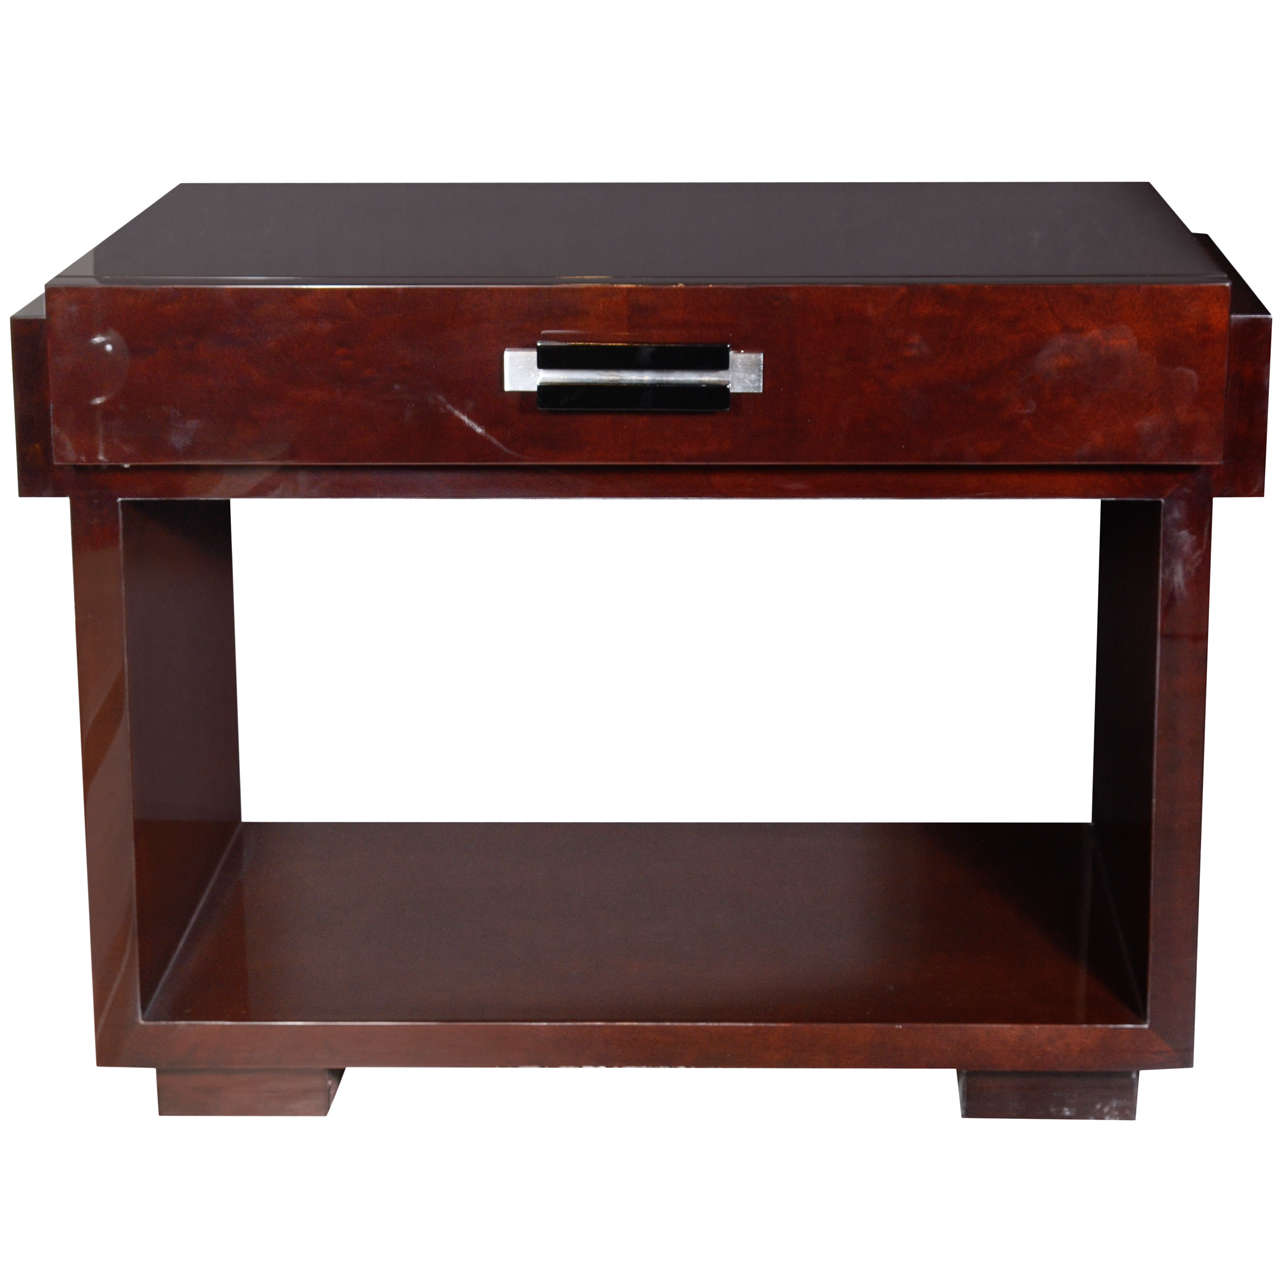 Art deco machine age console writing desk by donald deskey for Art deco writing